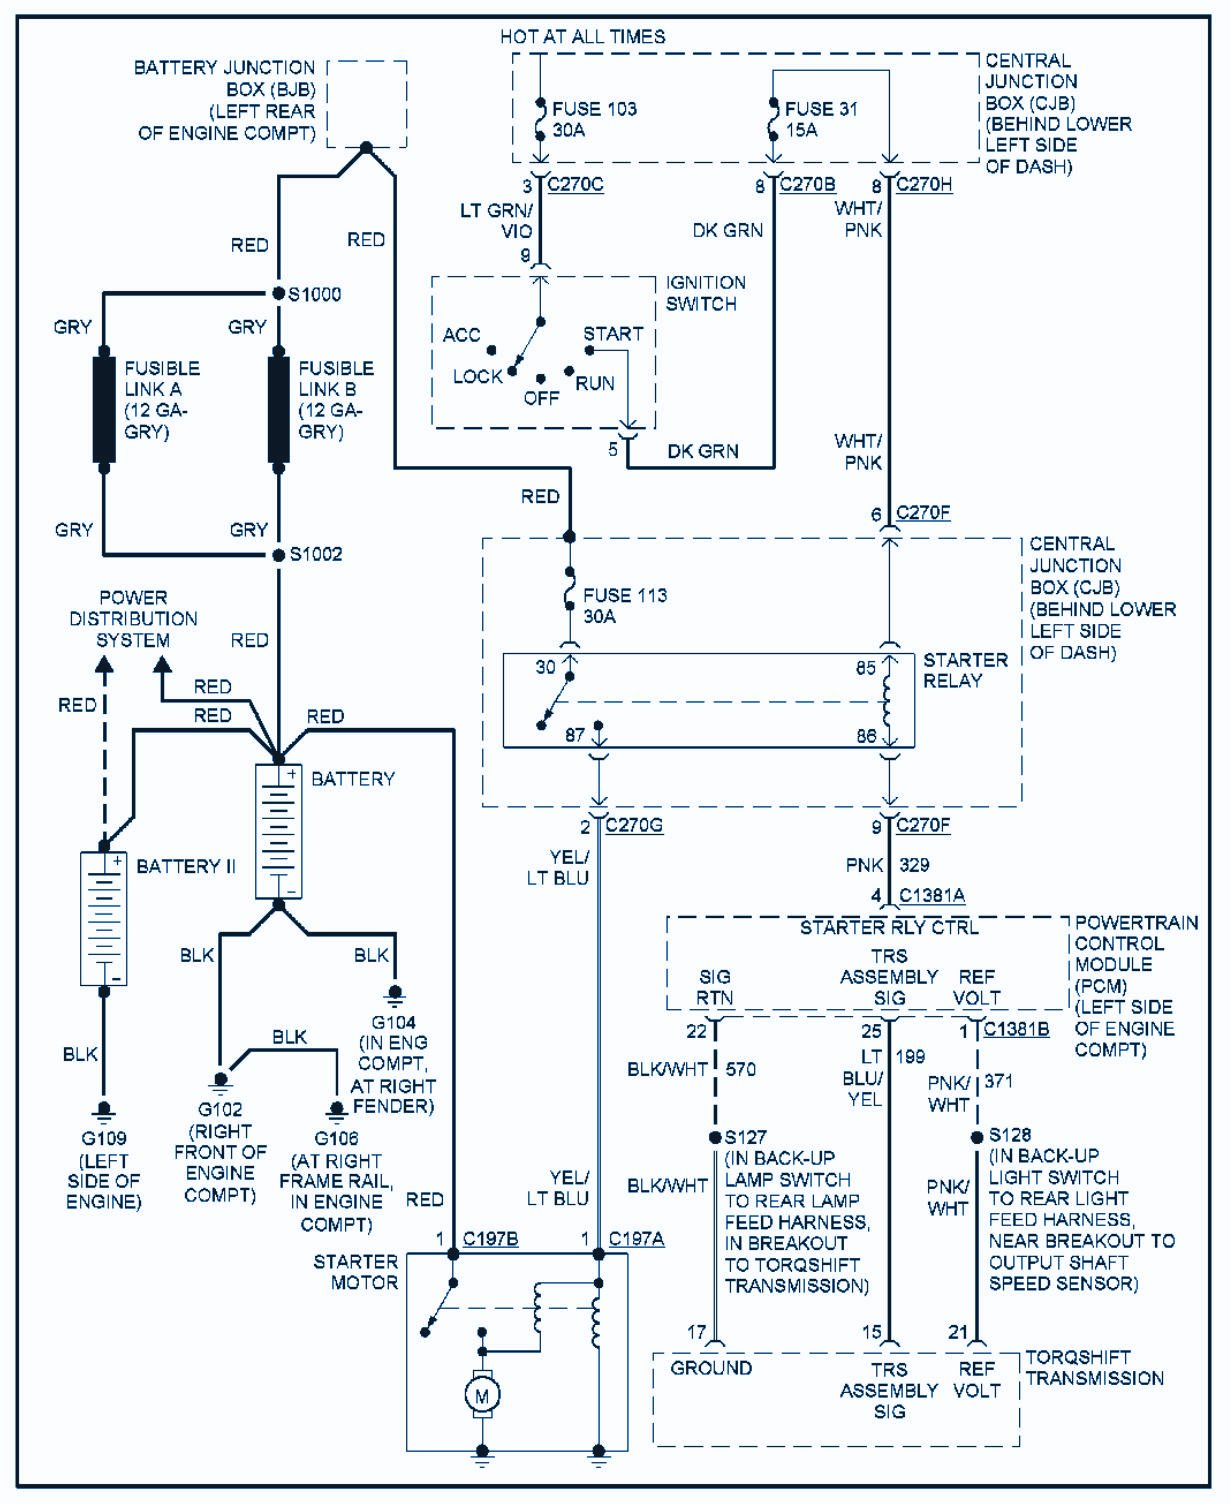 2007 Ford Expedition Power Steering Diagram Schematic Diagrams Freestyle Wiring 08 F 550 Autos Post Data Schema U2022 2004 Freestar